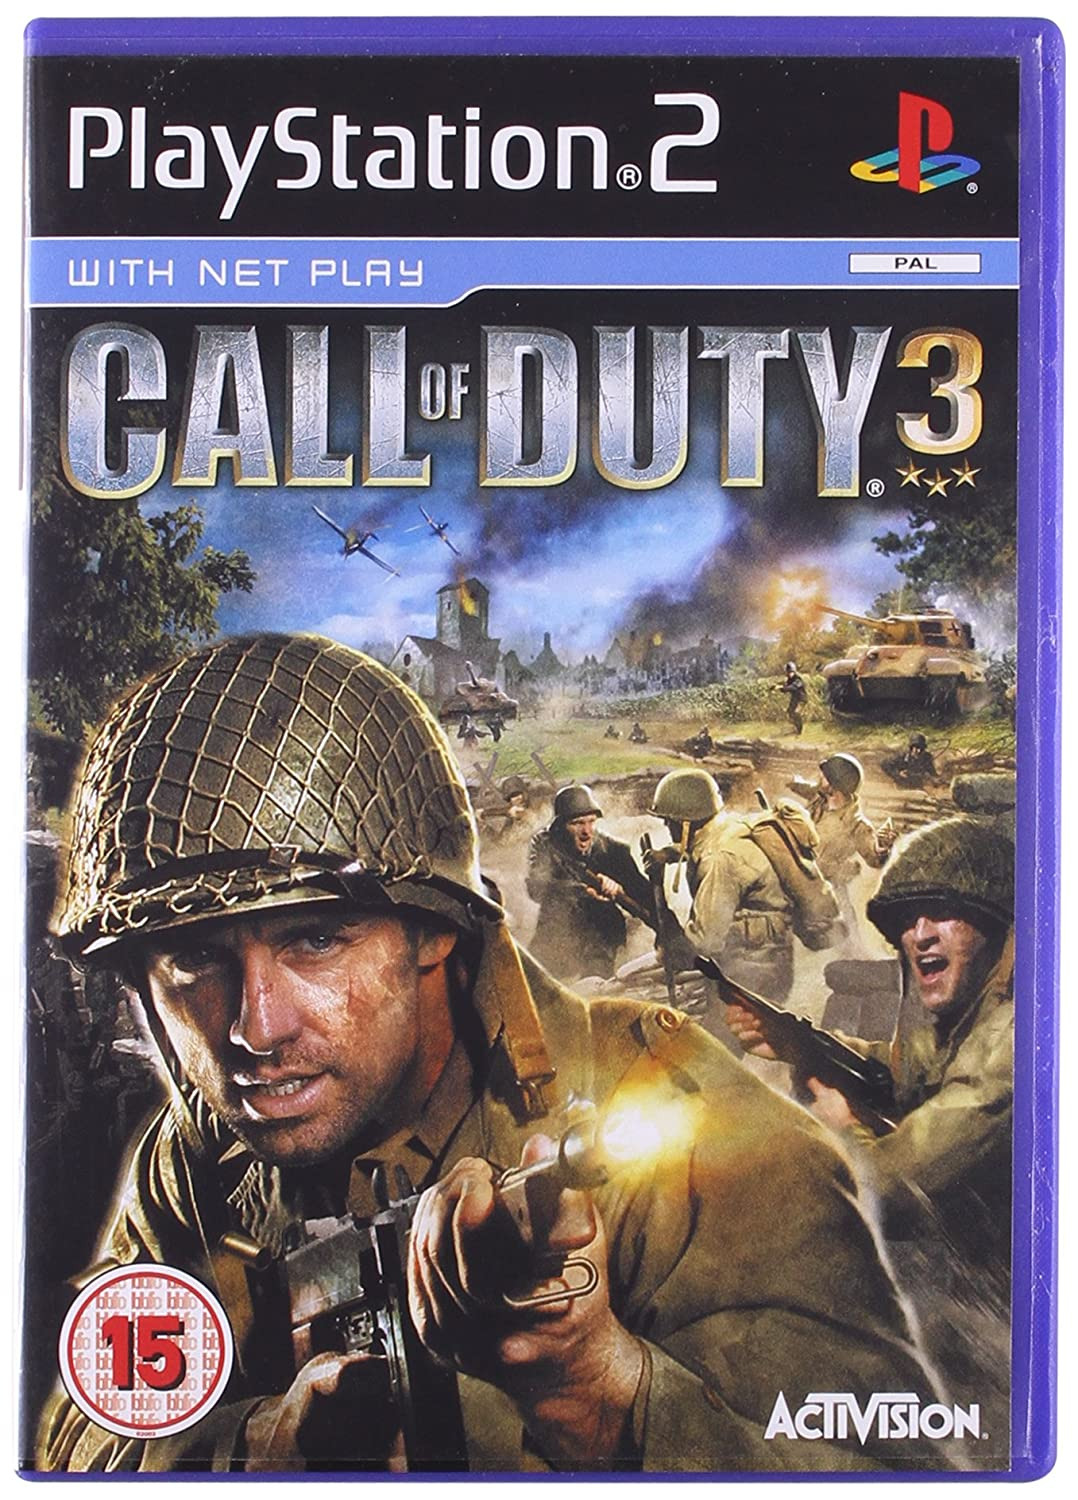 Amazon.com: Call of Duty 3 (PS2): Video Games